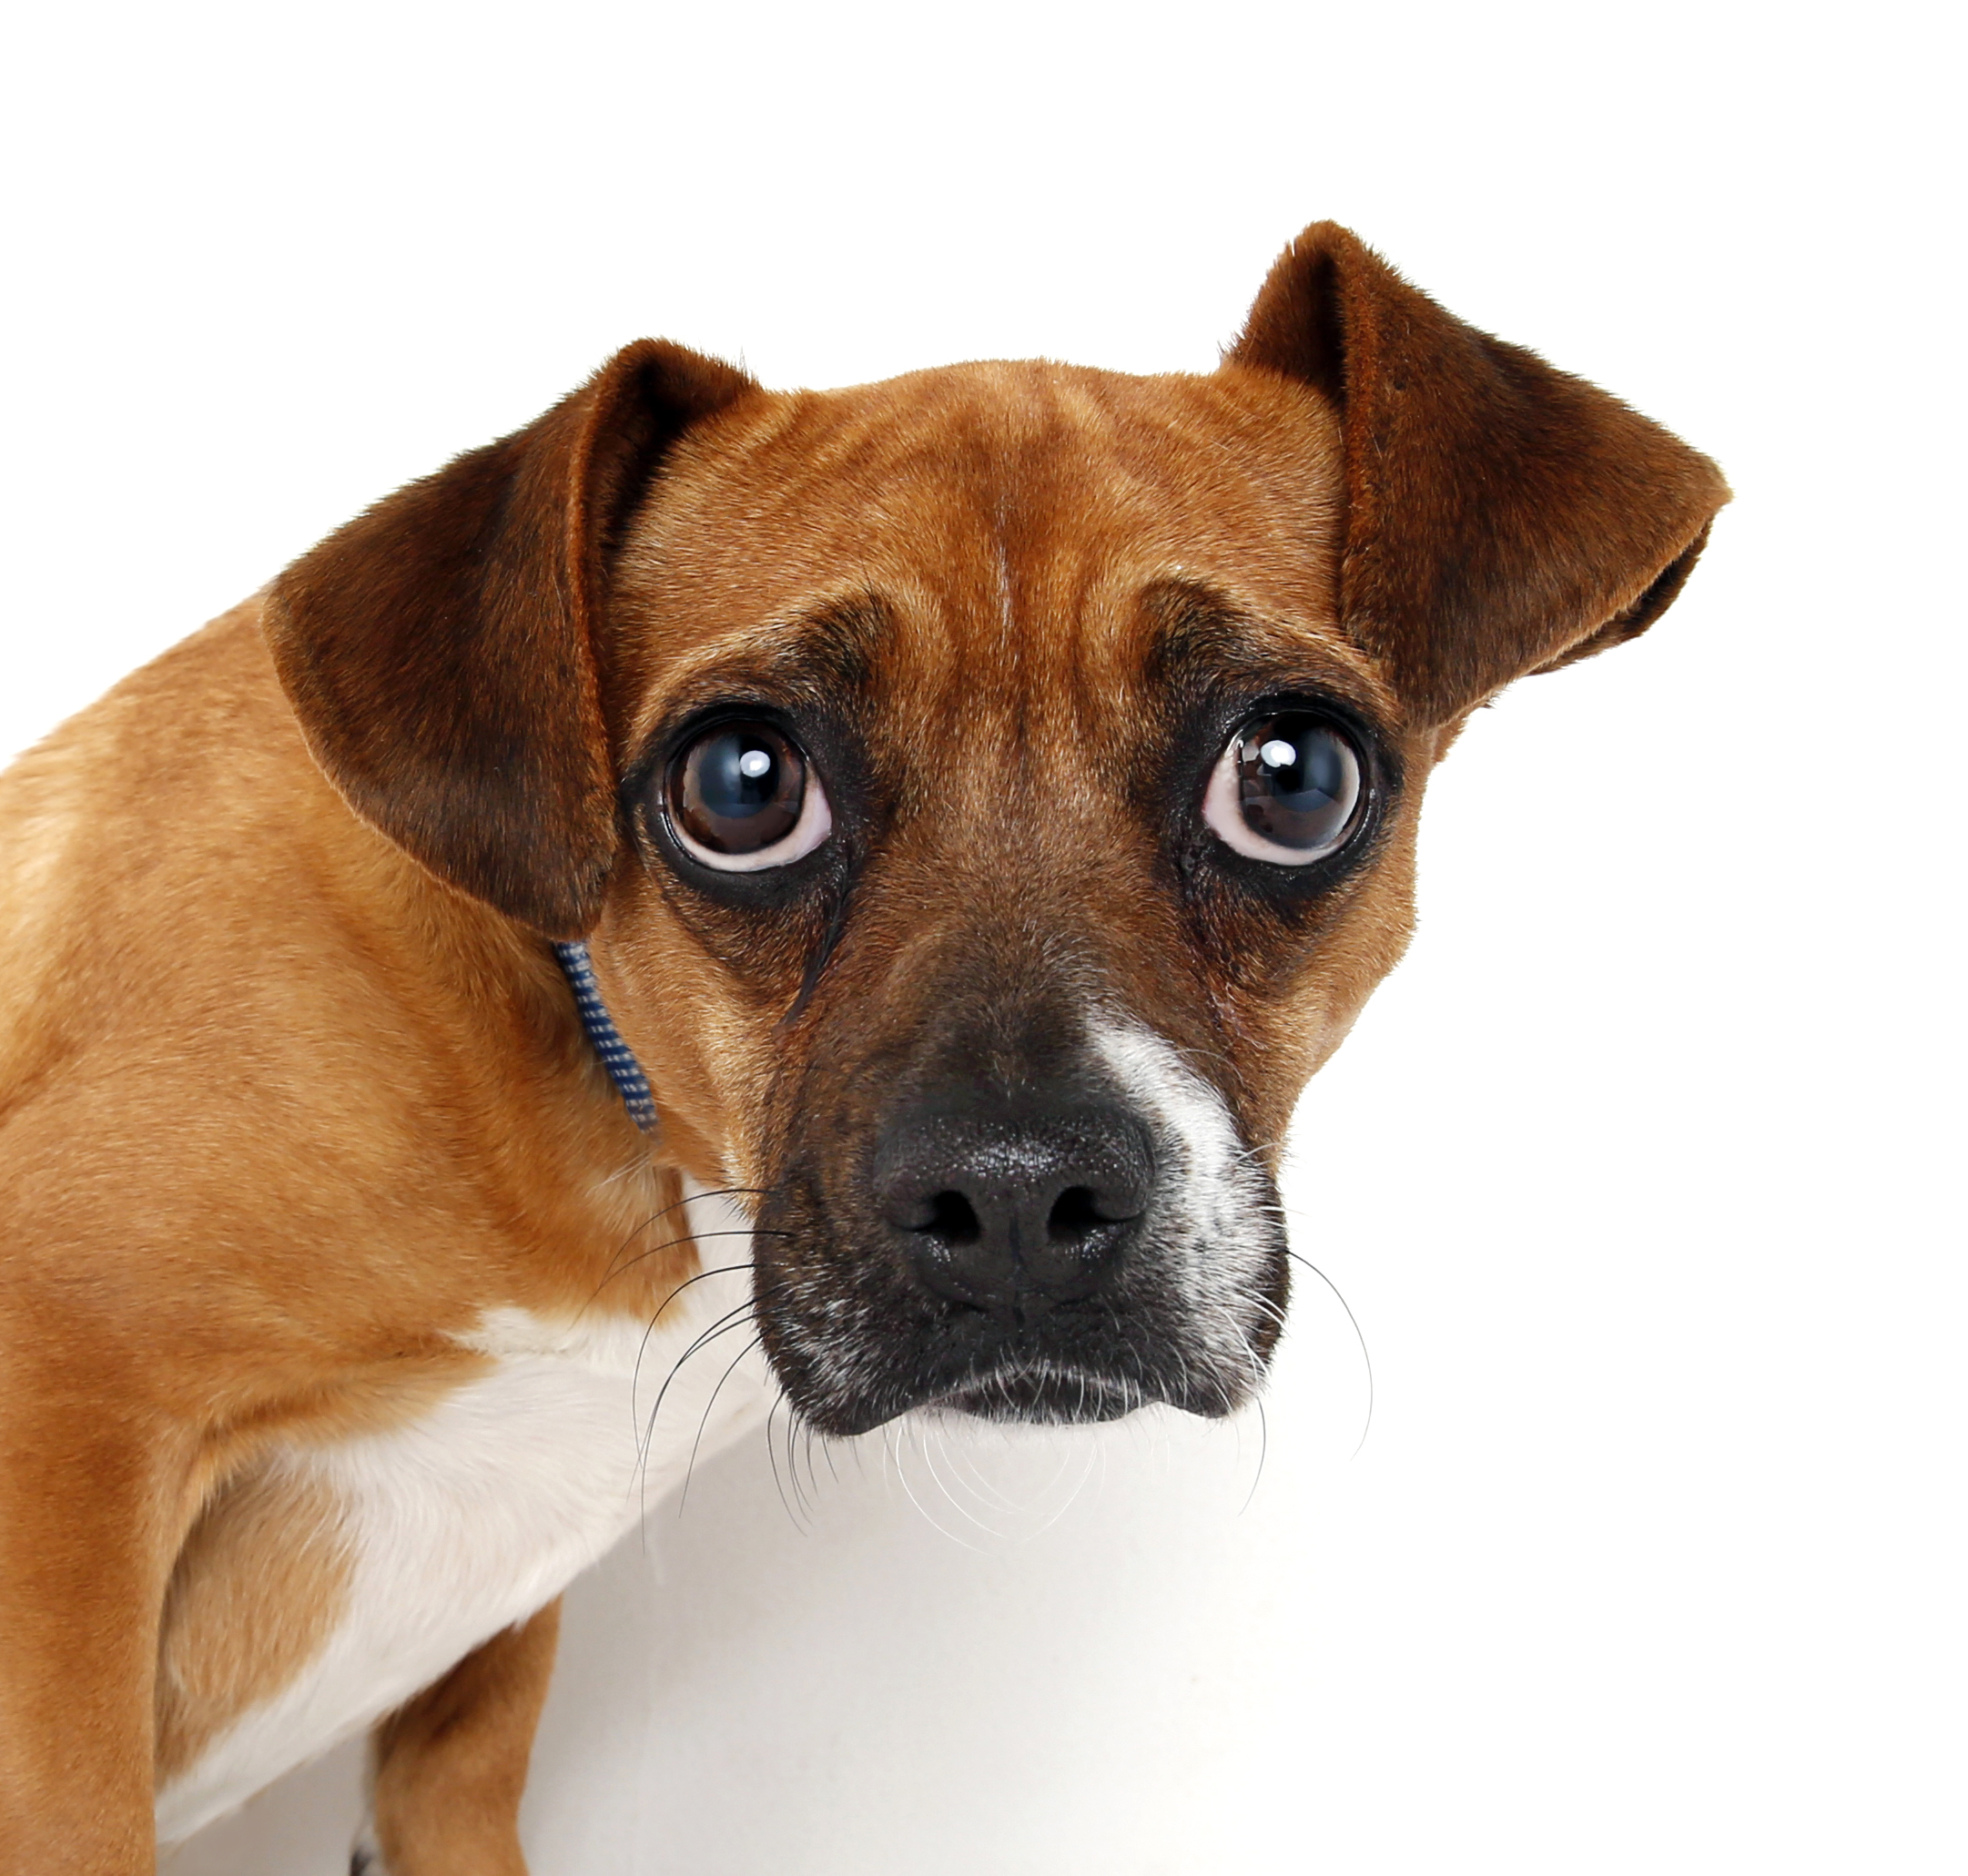 dog looks at camera like he did something wrong